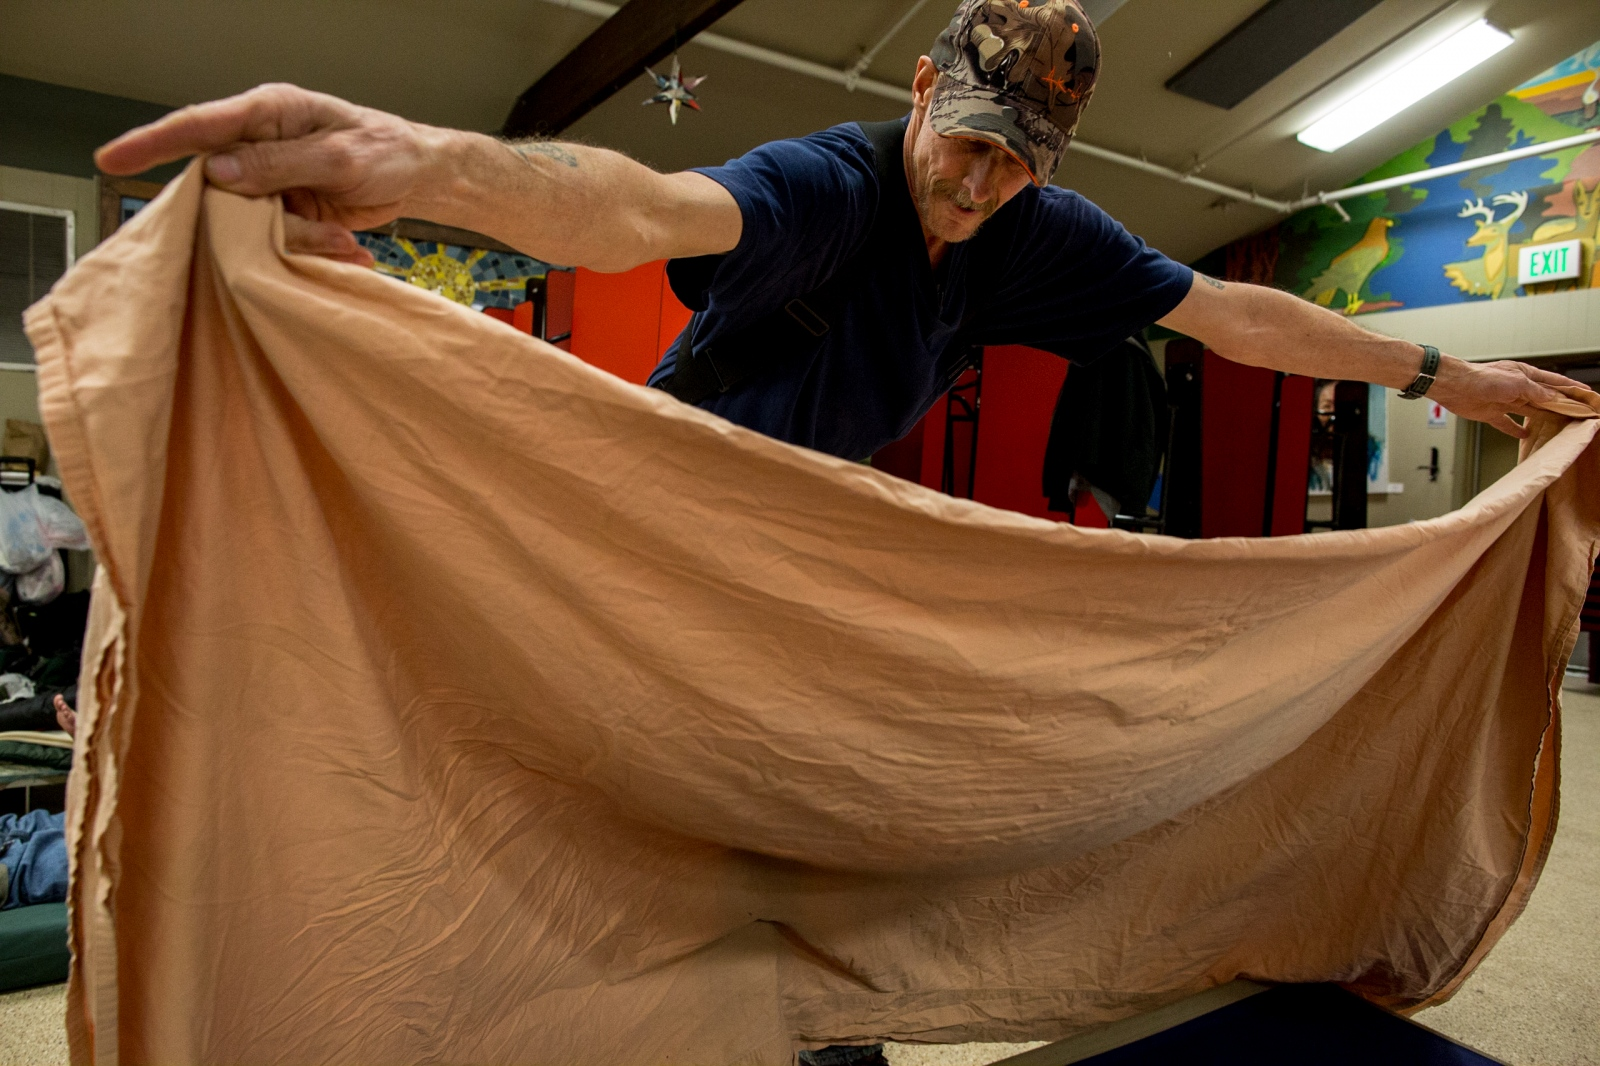 JD Hoskins, 58, makes his bed for the night at Bean's Cafe, a soup kitchen that serves also as a men's overflow homeless shelter in Anchorage. JD has been volunteering at the cafe to make sure that he has a bed for the night, and hopes to work towards self-sufficiency.